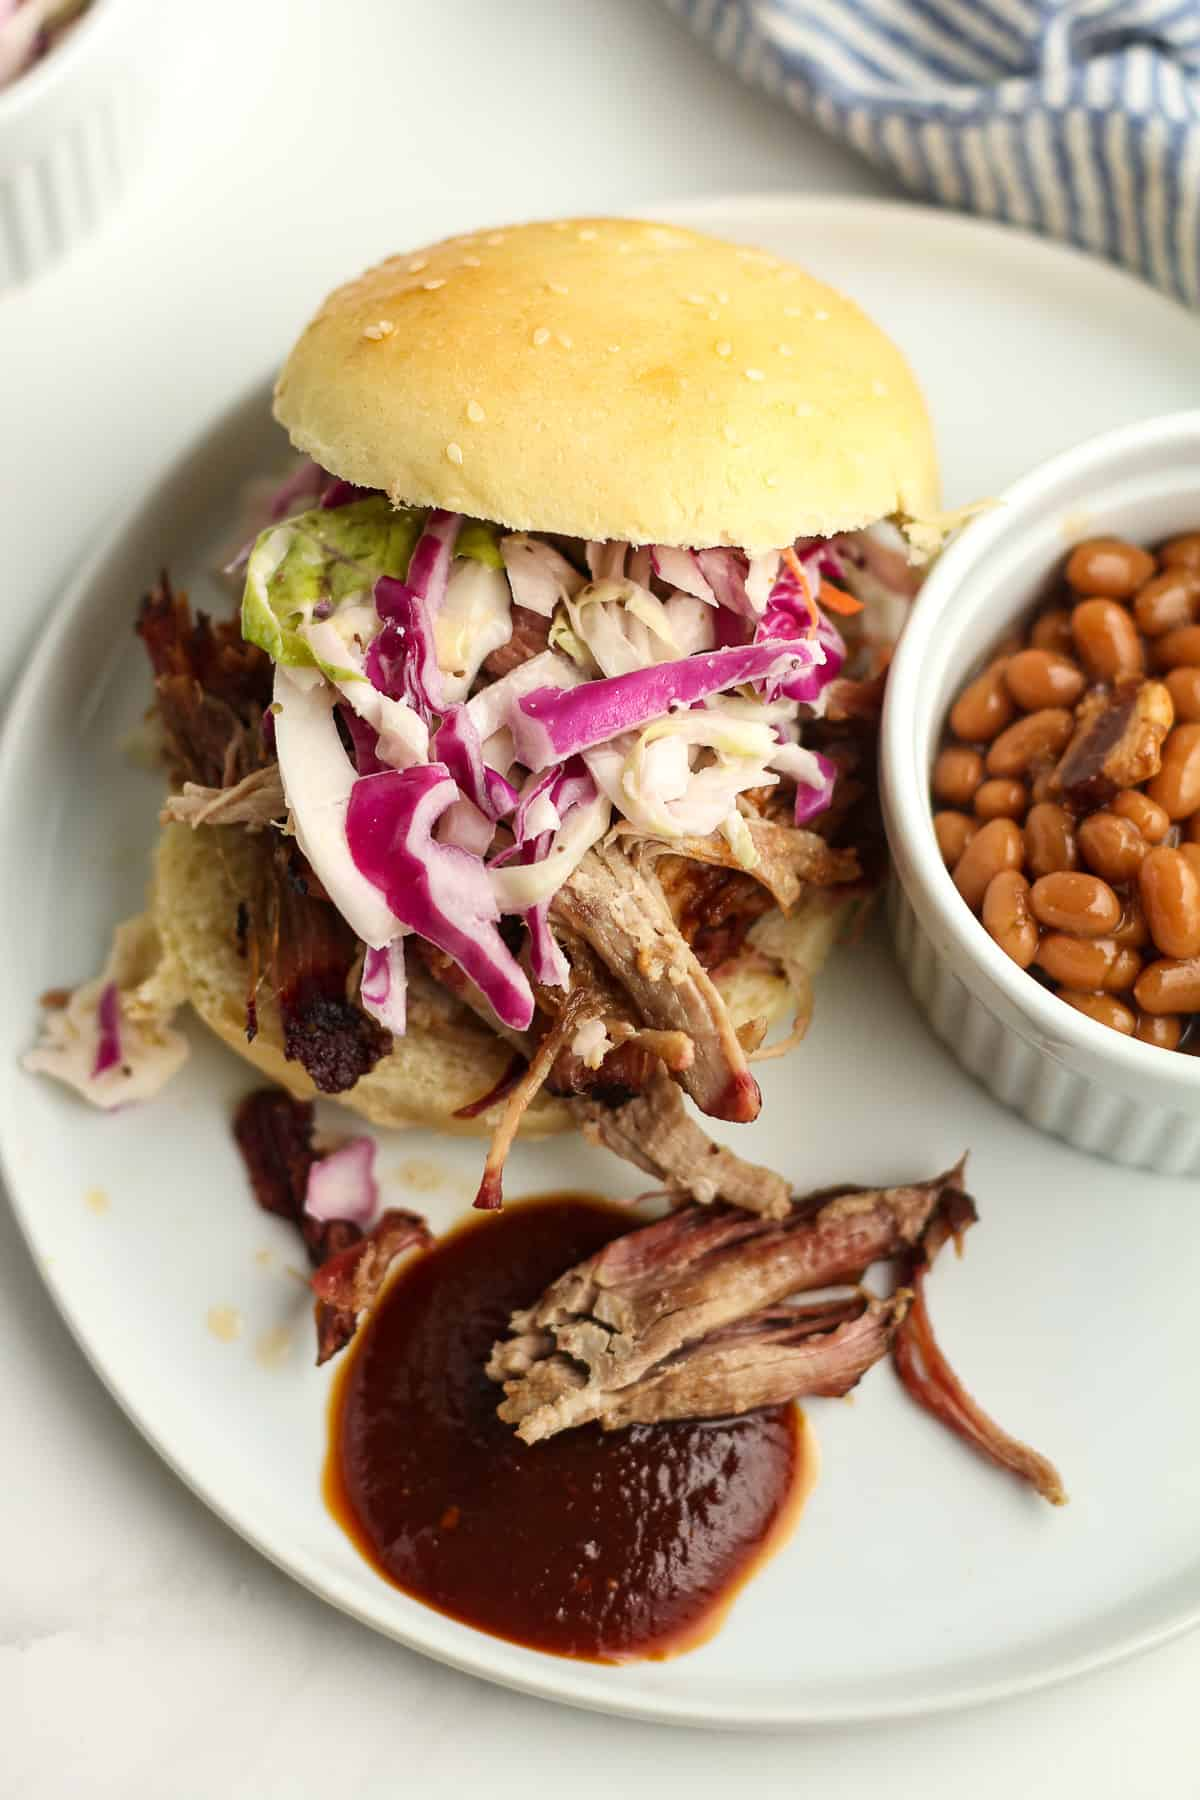 A plate with a pulled pork sandwich, with coleslaw and barbecue sauce.